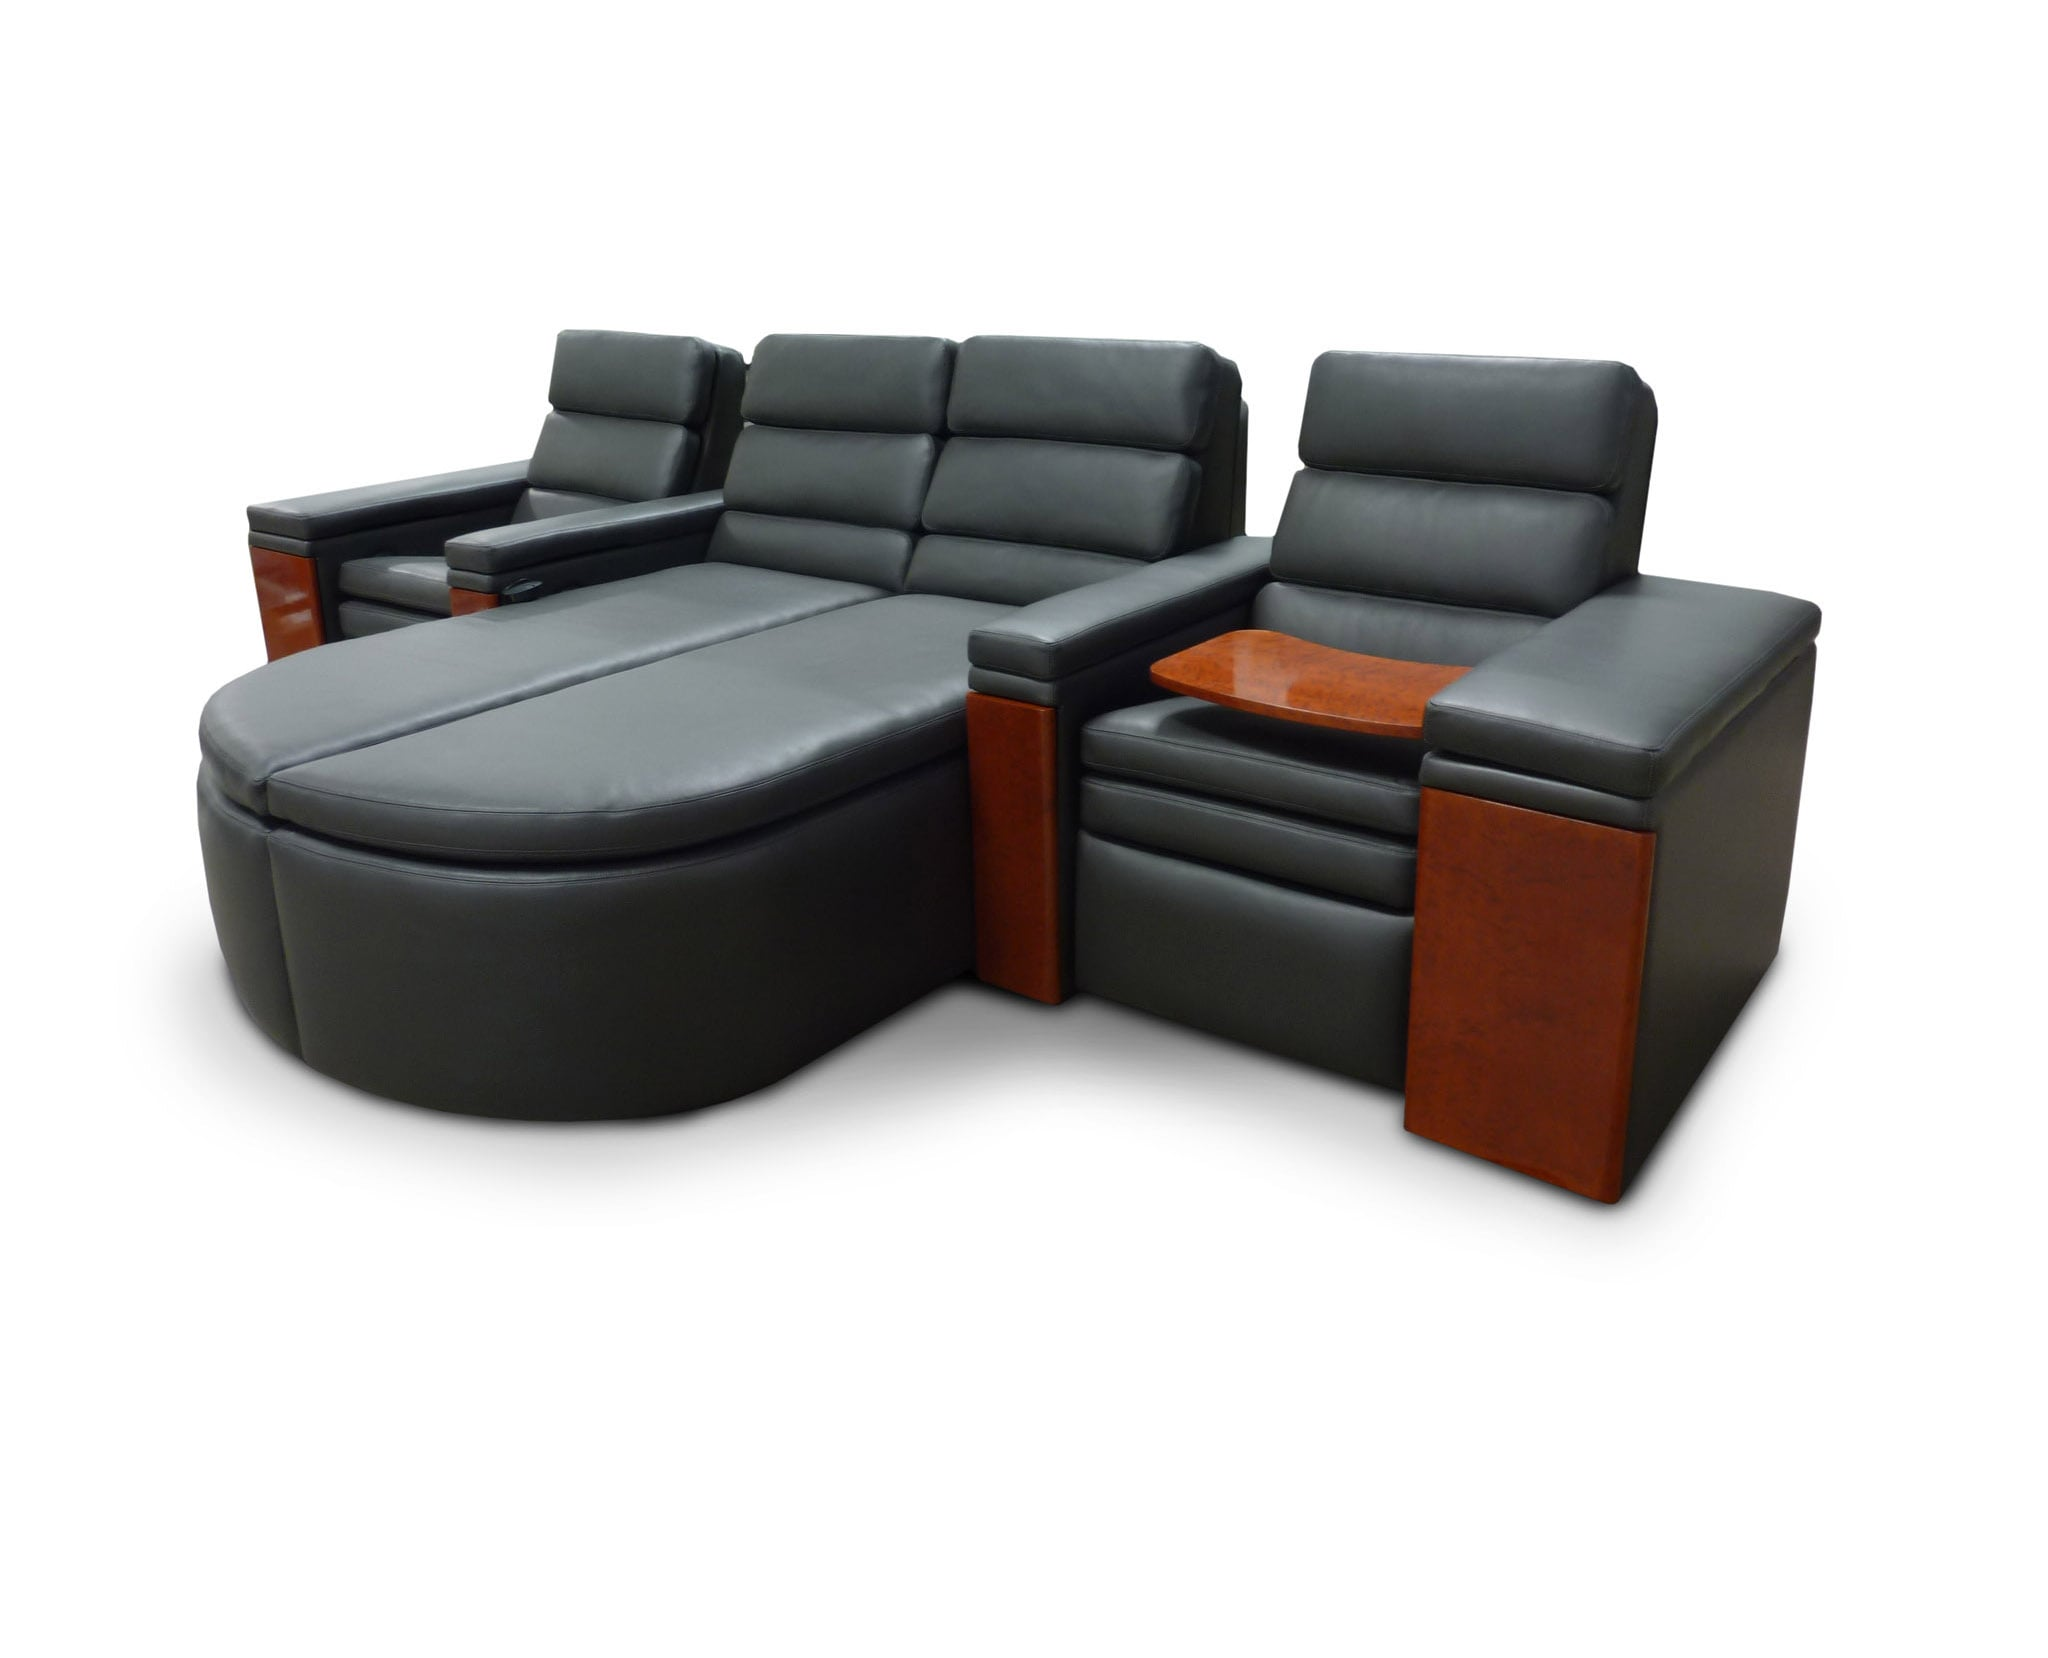 Concealed & Motorized First Class Tray Tables; Model: Solo Single-Dual Lounger-Single